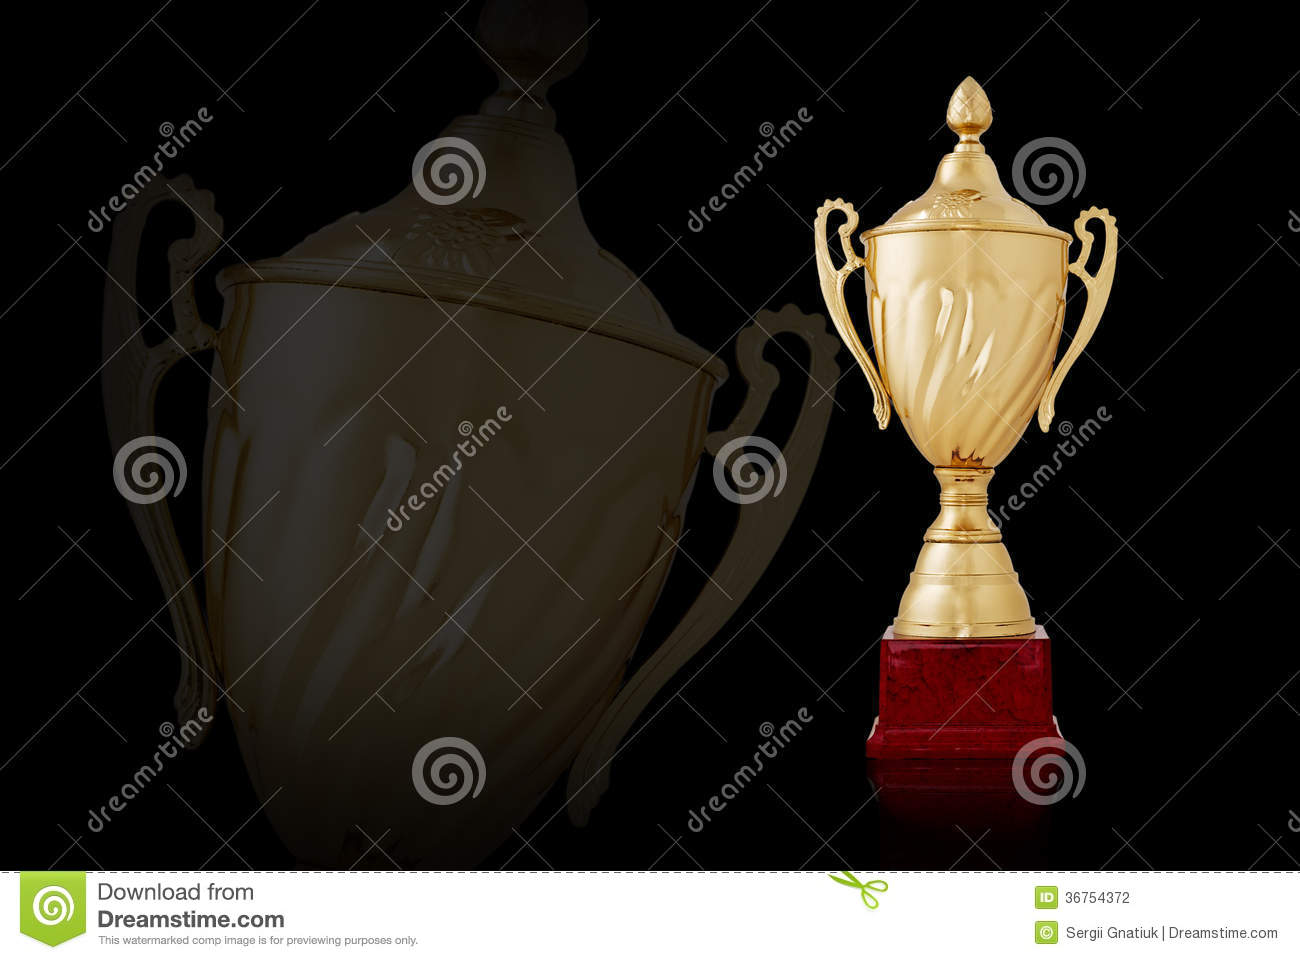 Download Two Shiny Golden Trophies On Black Background Stock Illustration